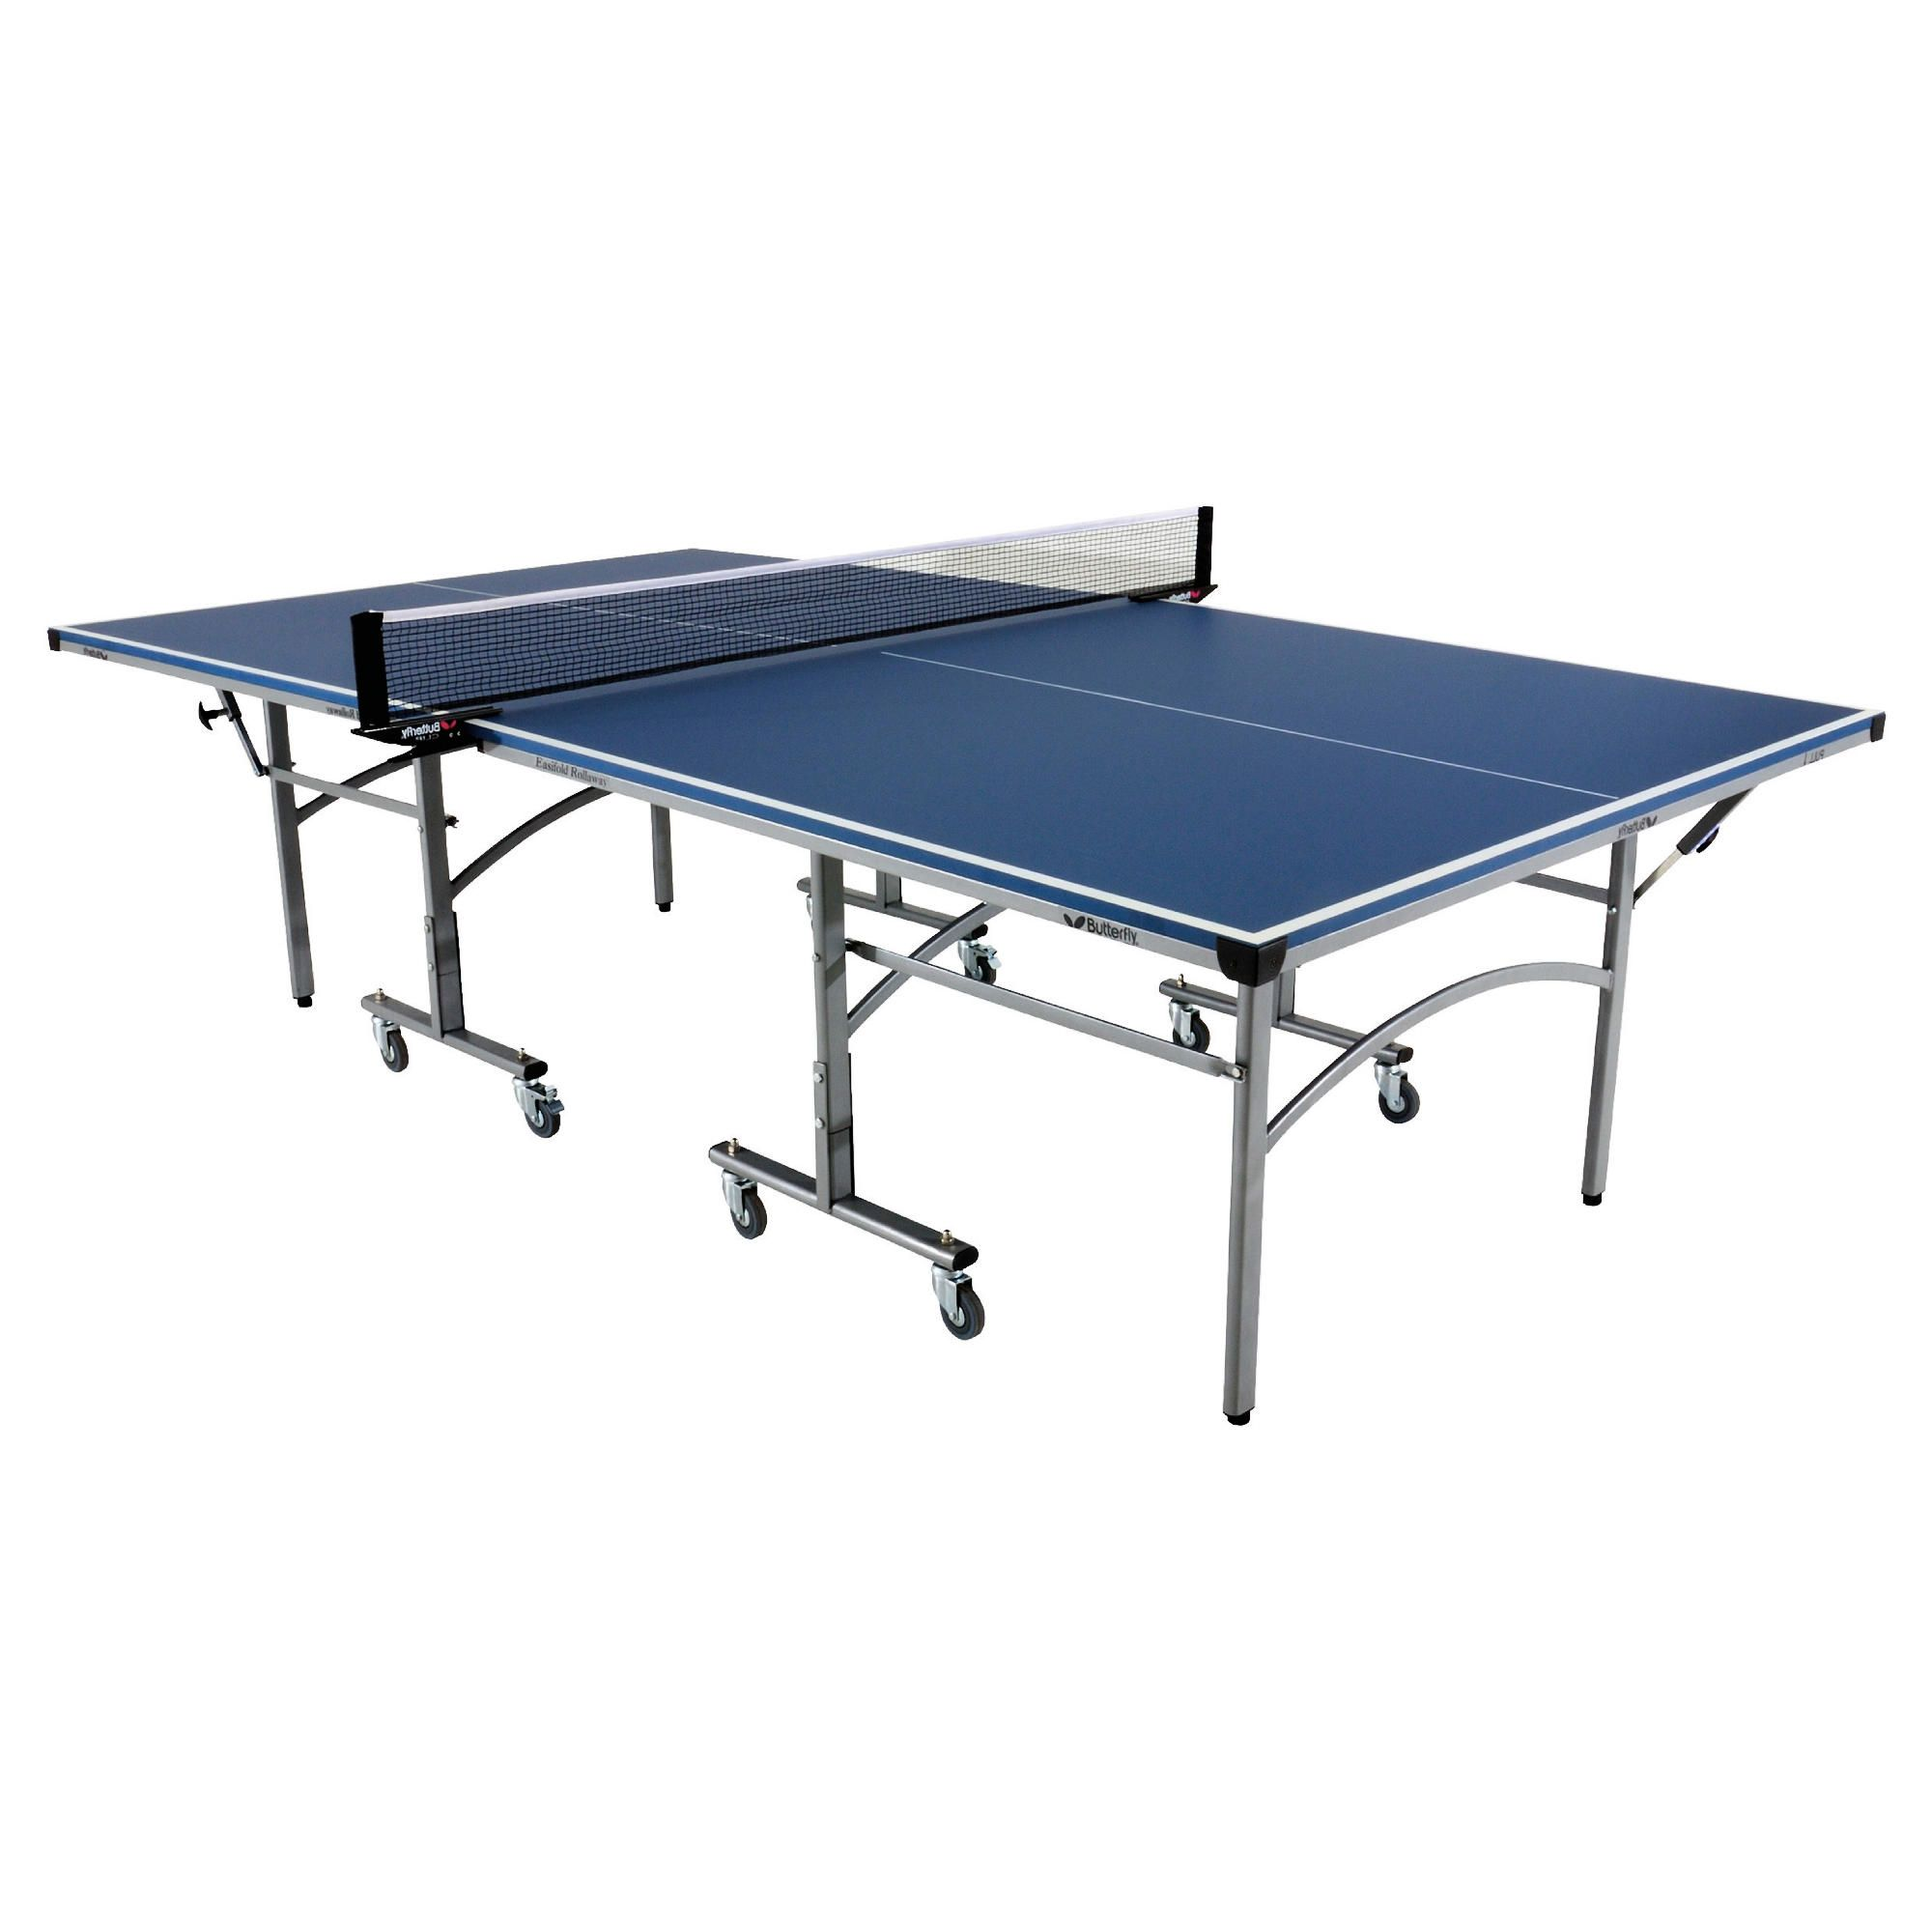 Butterfly Easifold Indoor Table Tennis Table - Blue at Tesco Direct